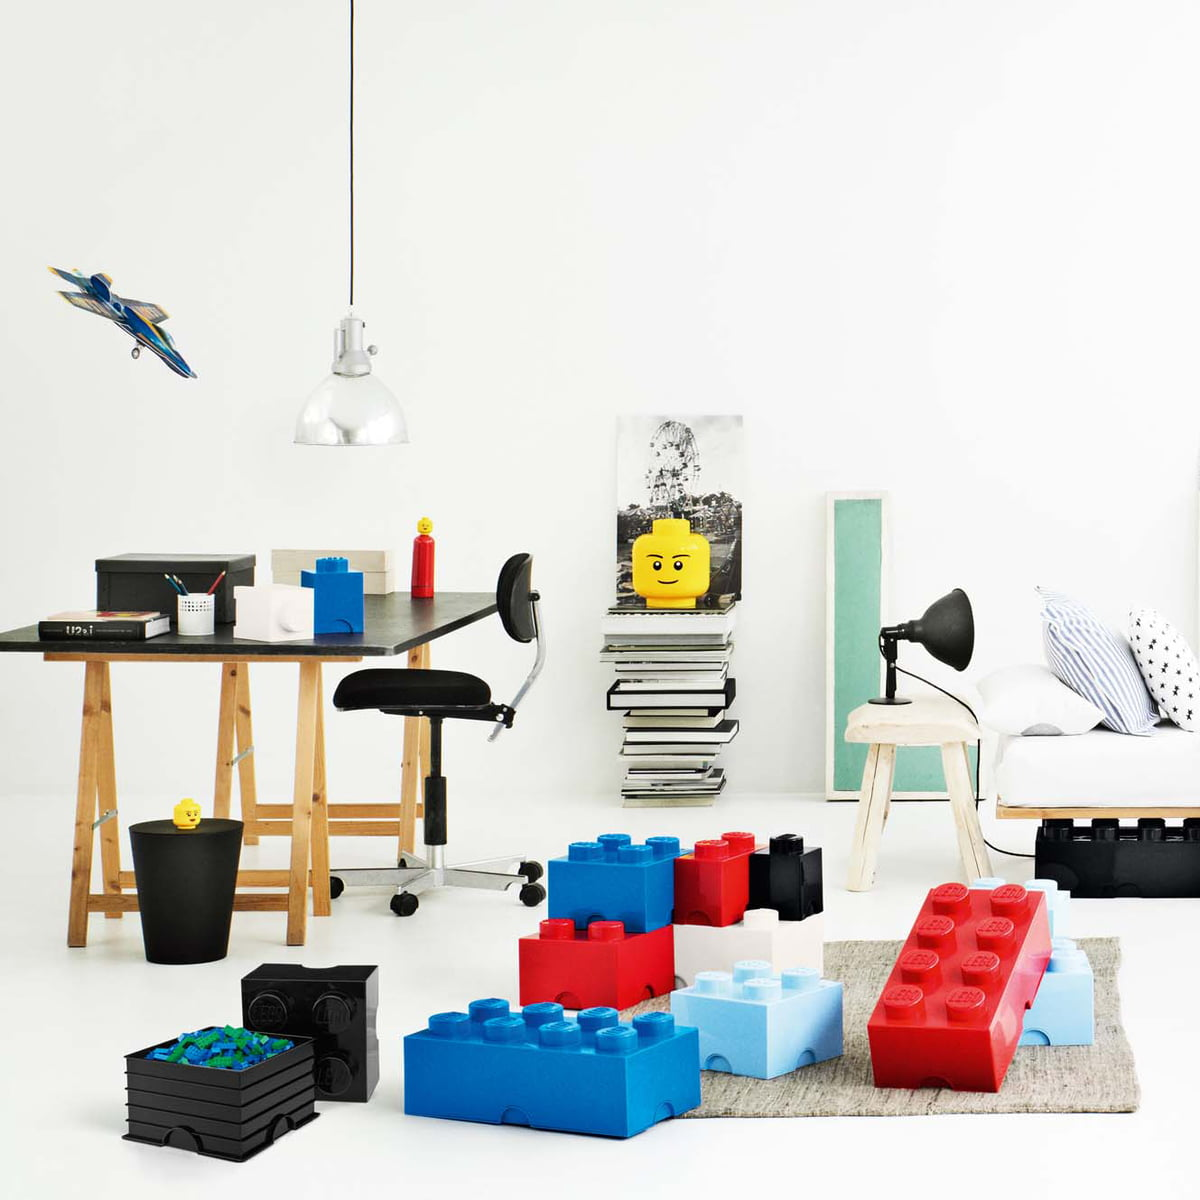 Storage Brick 1 by Lego in the home design shop